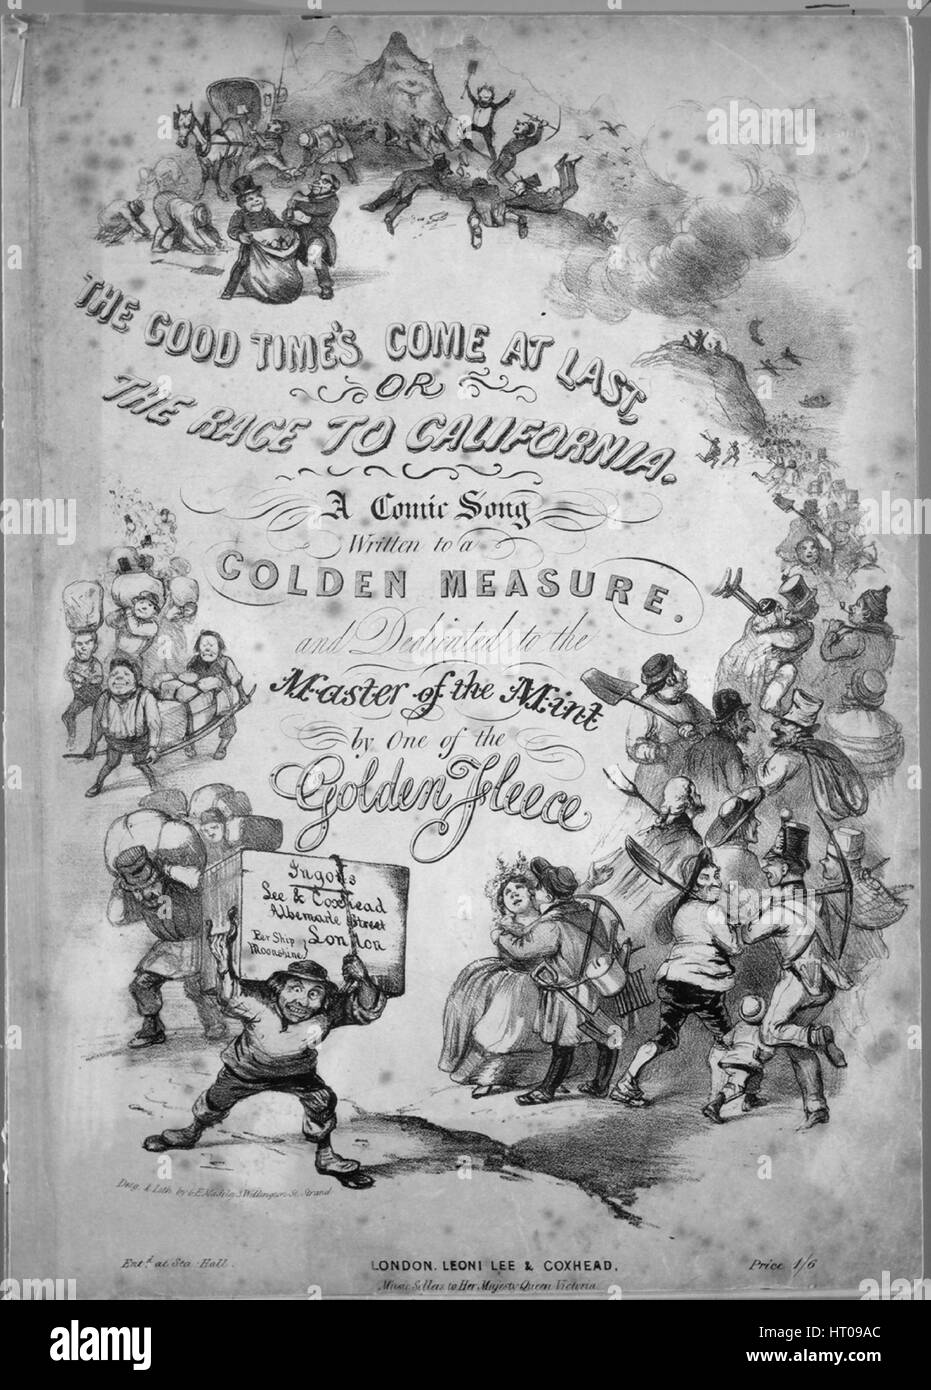 Sheet music cover image of the song 'The Good Time's Come at Last, or, The Race To California A Comic Song', with Stock Photo